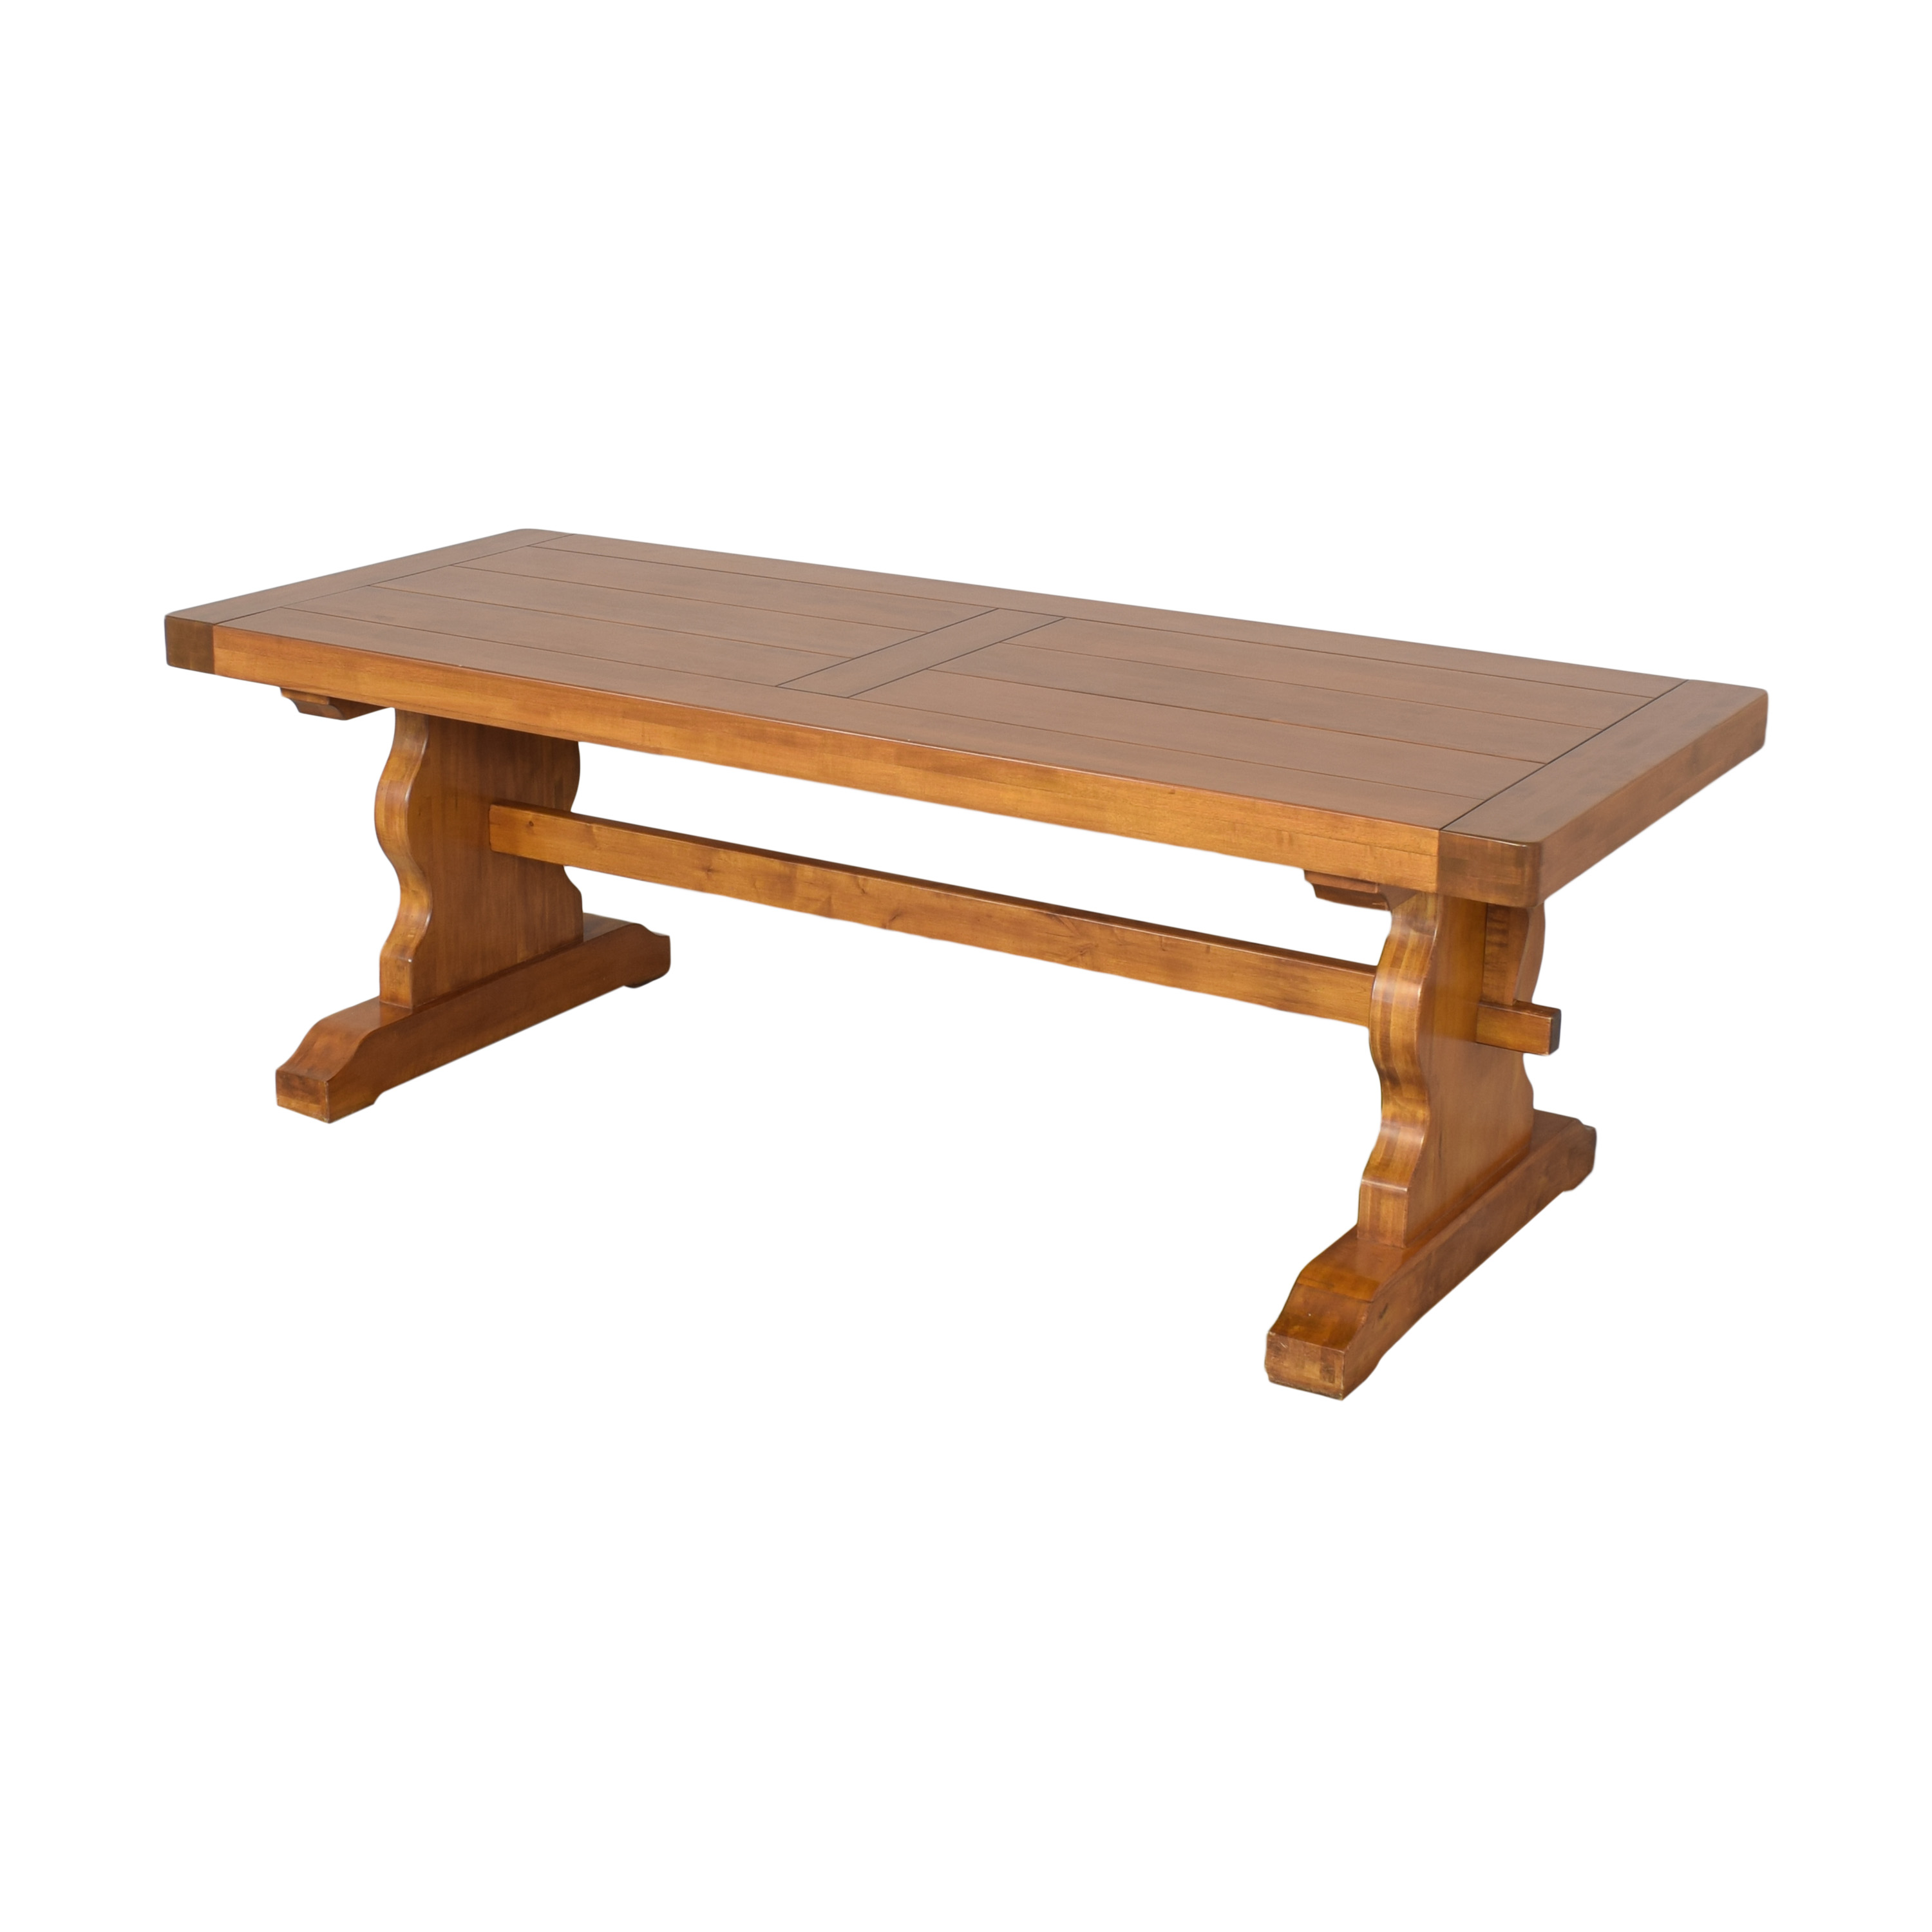 Double Pedestal Dining Table brown